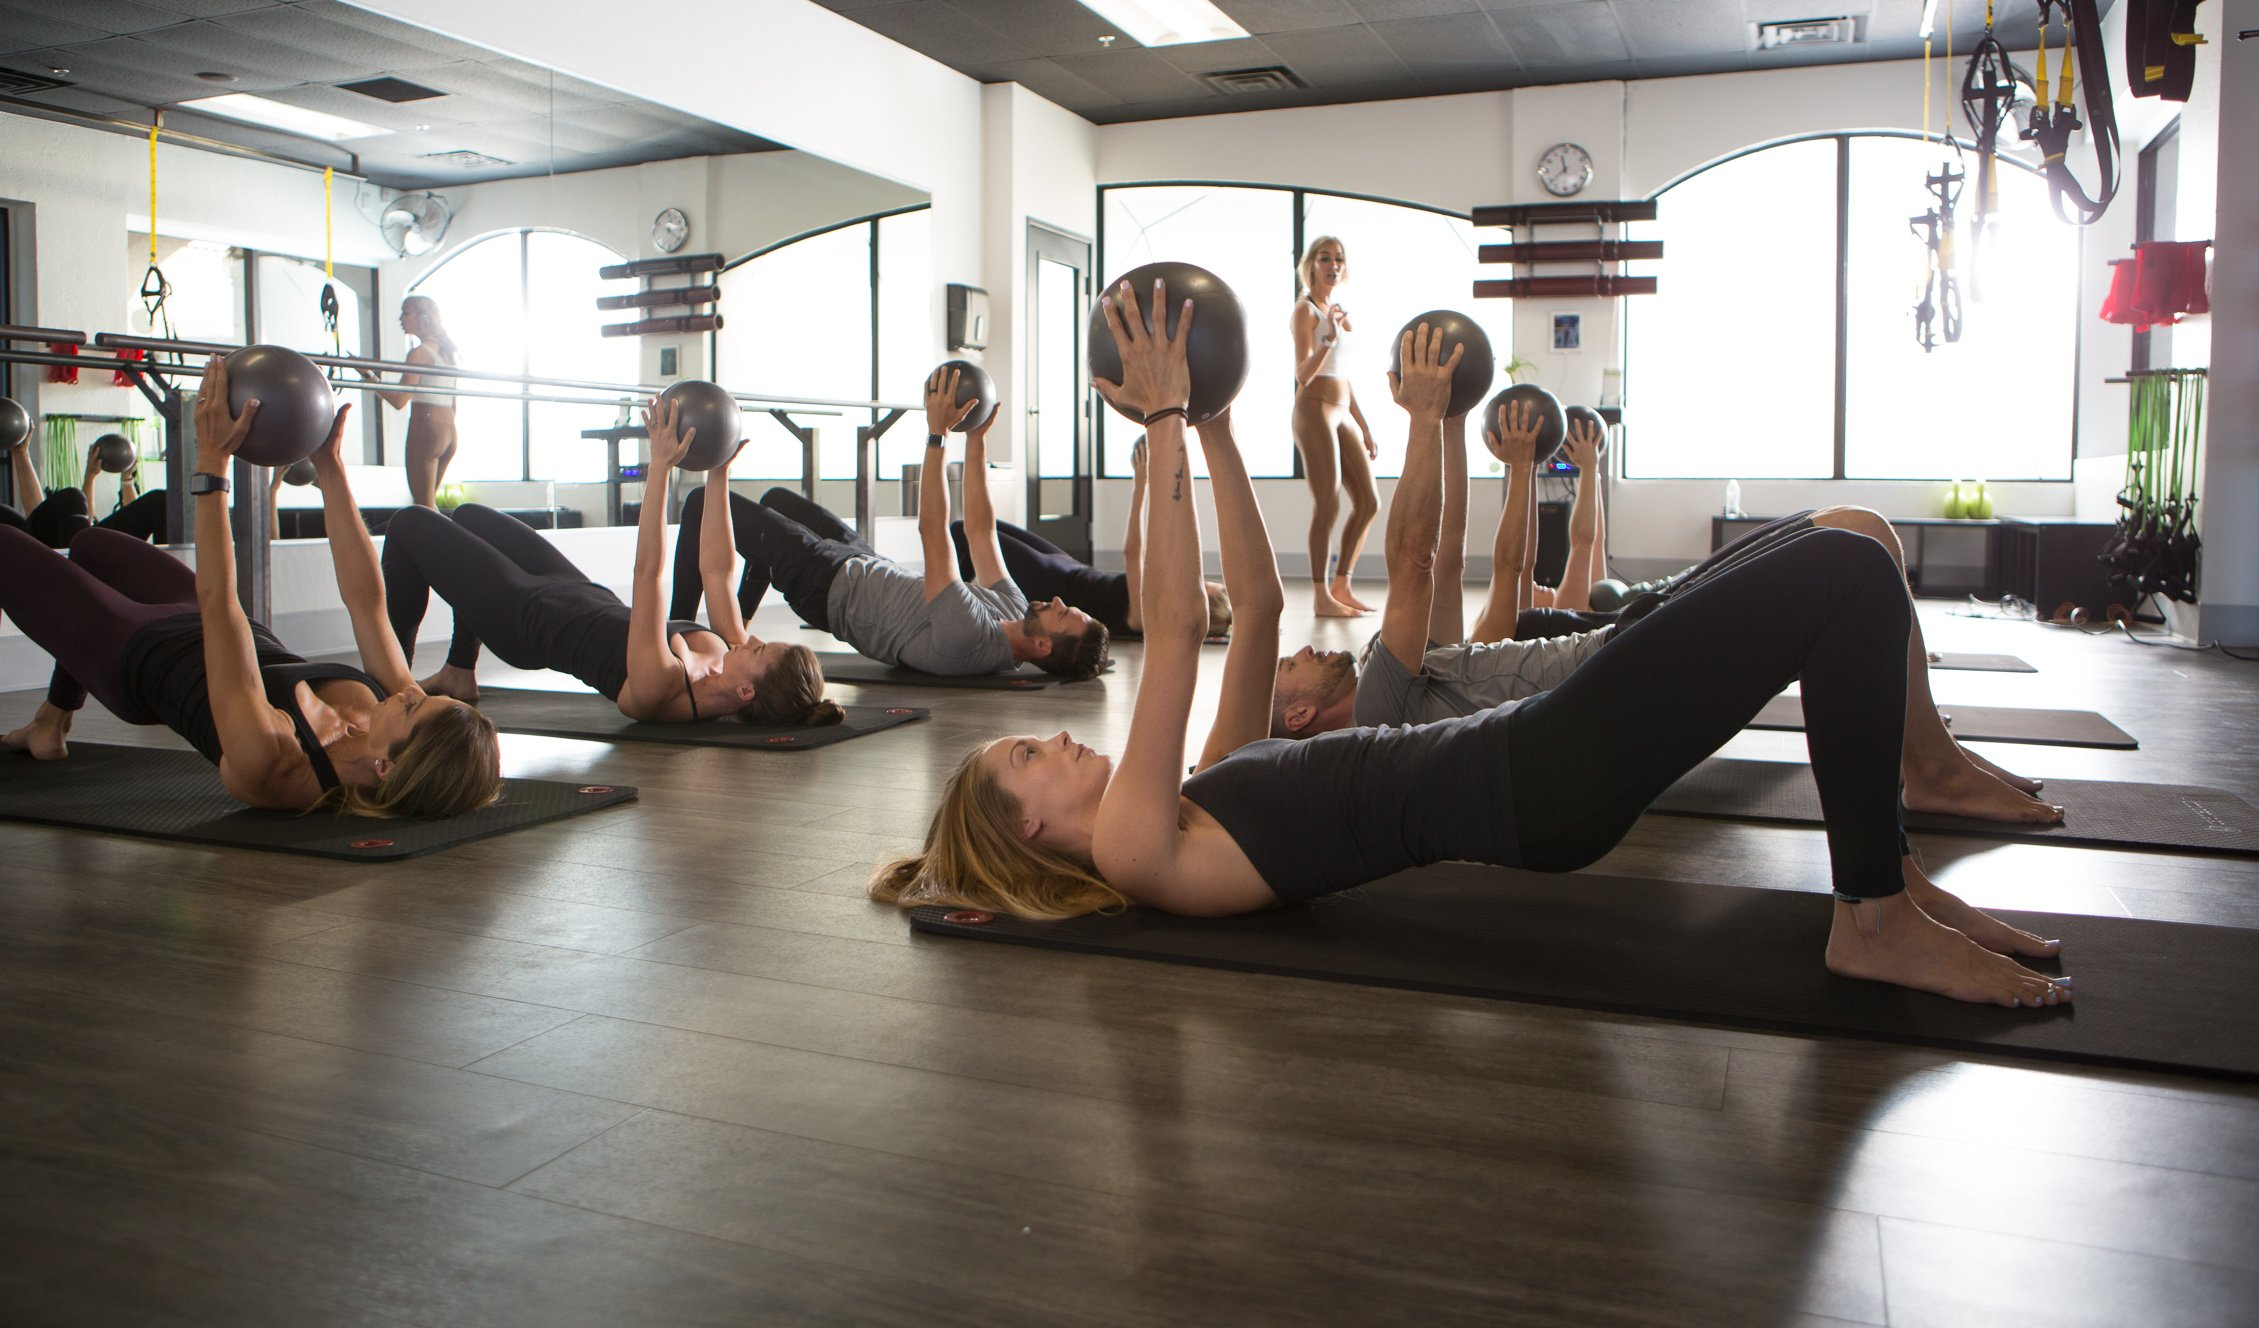 Pilates with weights by Remedy Pilates and Barre with Gone Adventuring